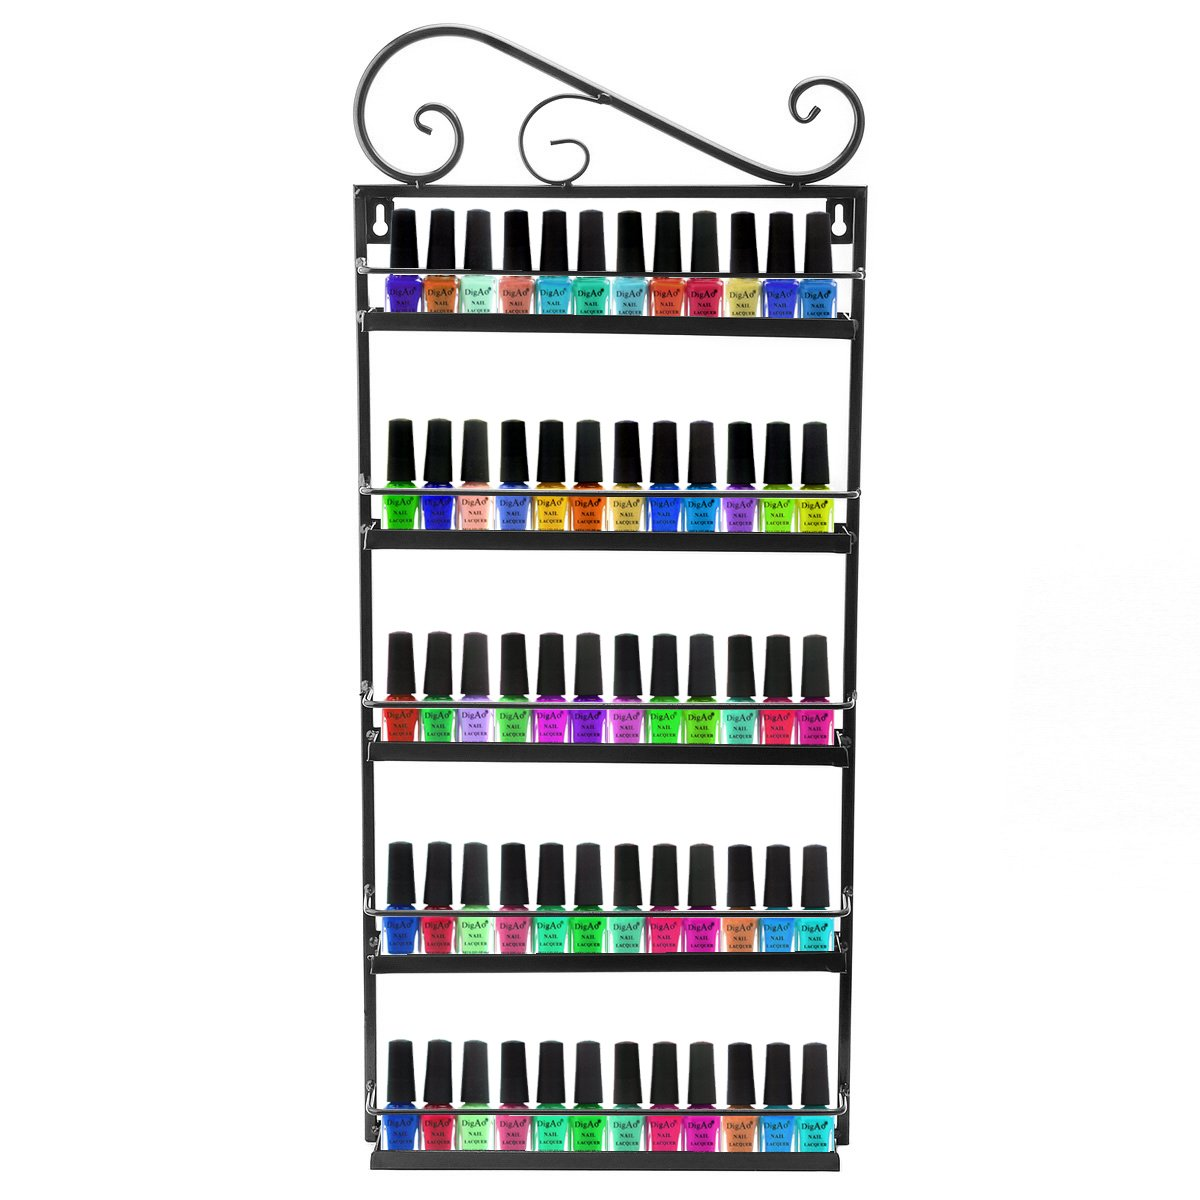 Dazone® Nail Polish Wall Rack Organizer Holds 50 Bottles Nail Polish Shelf Black by Dazone